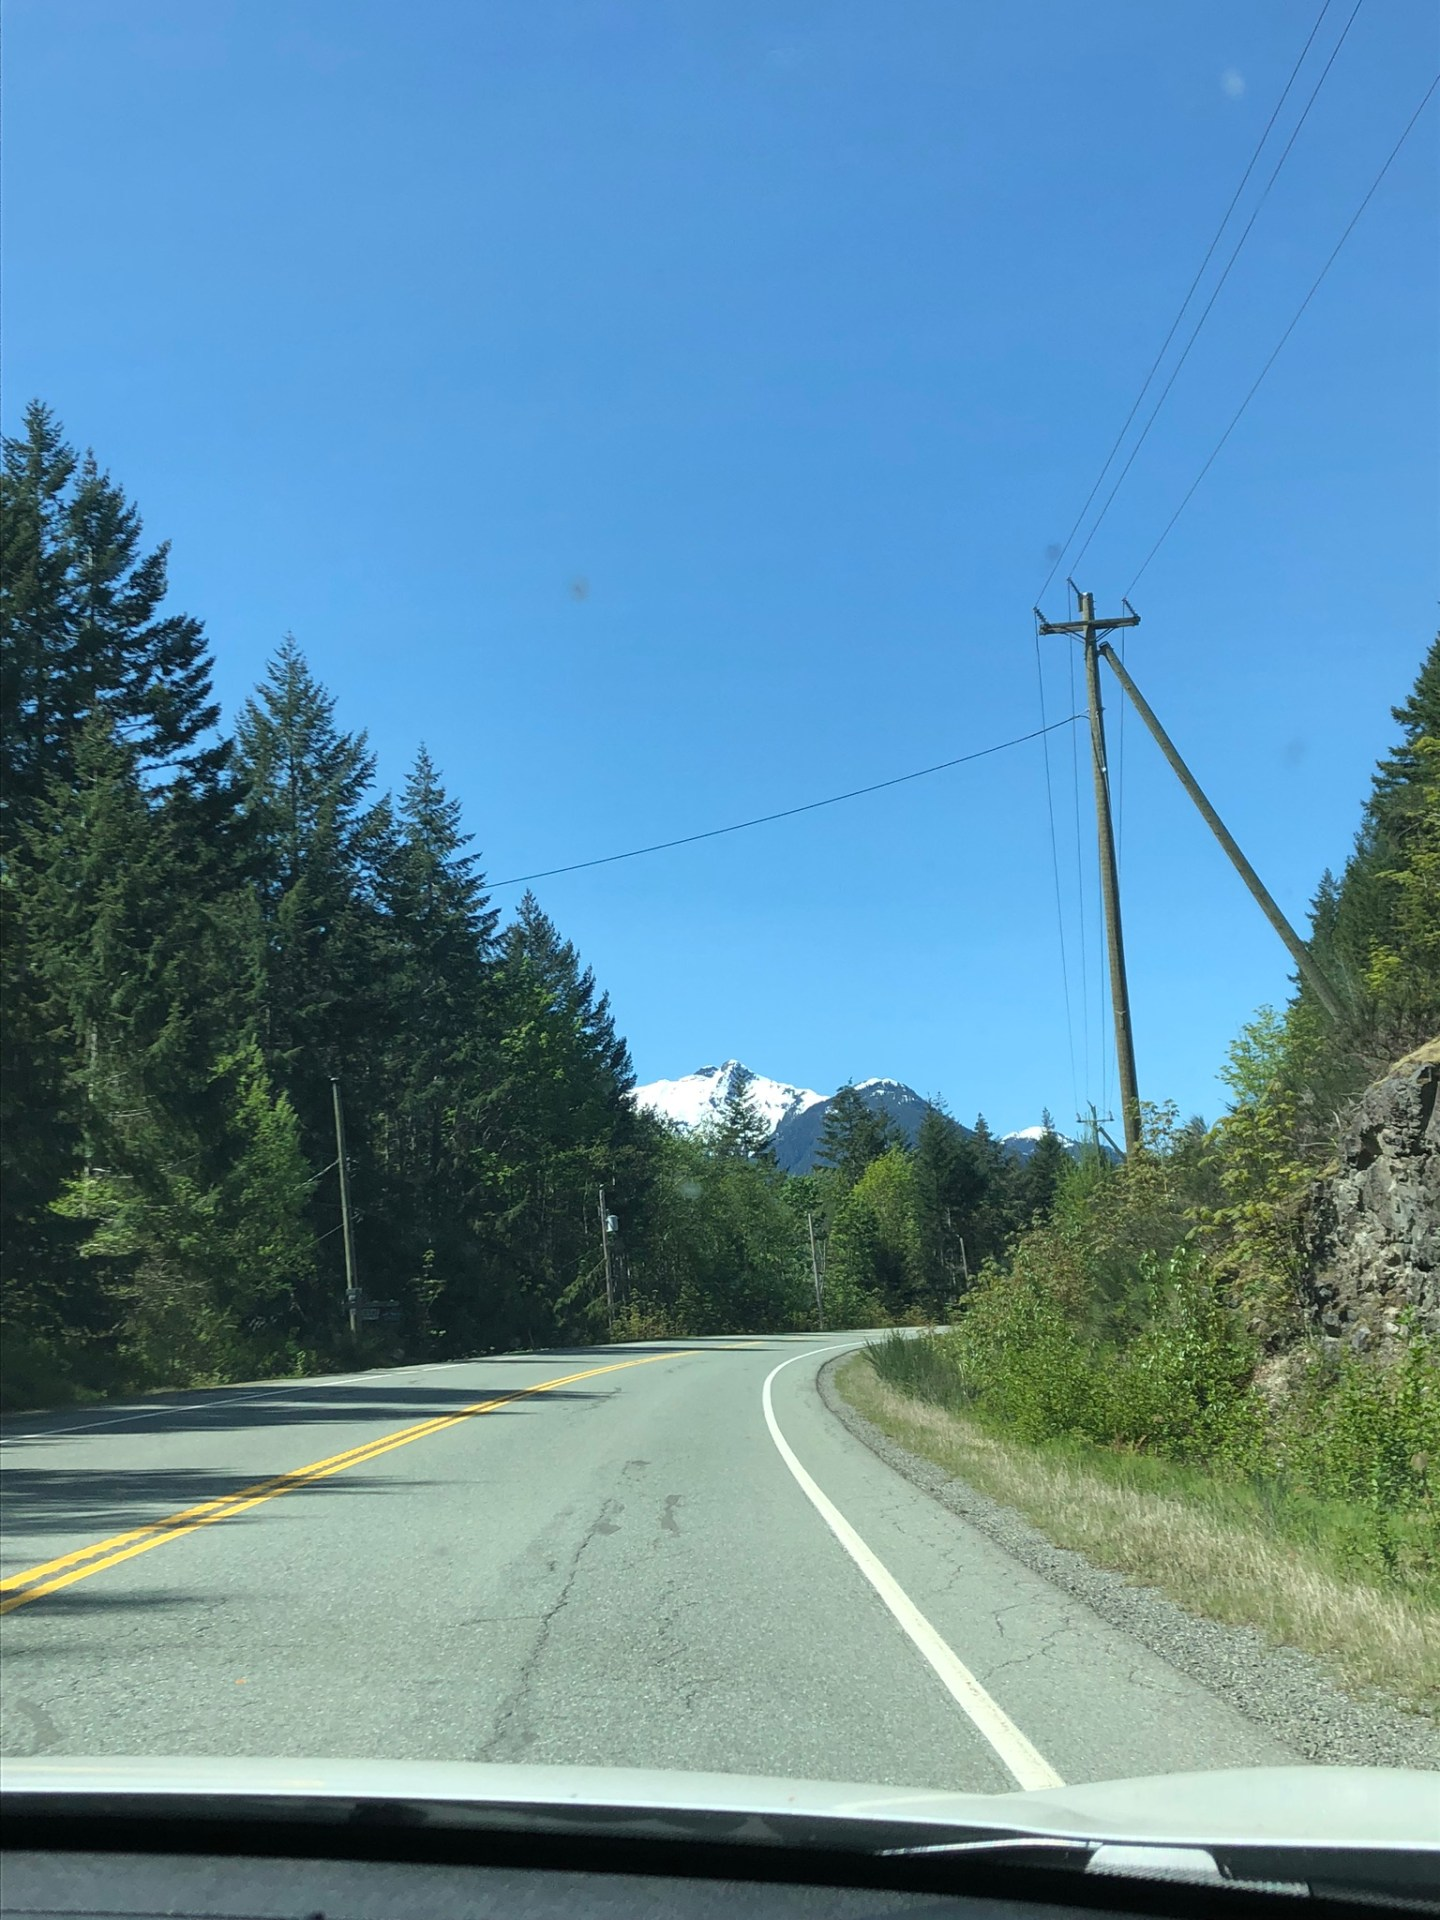 Driving to Tofino, Vancouver Island